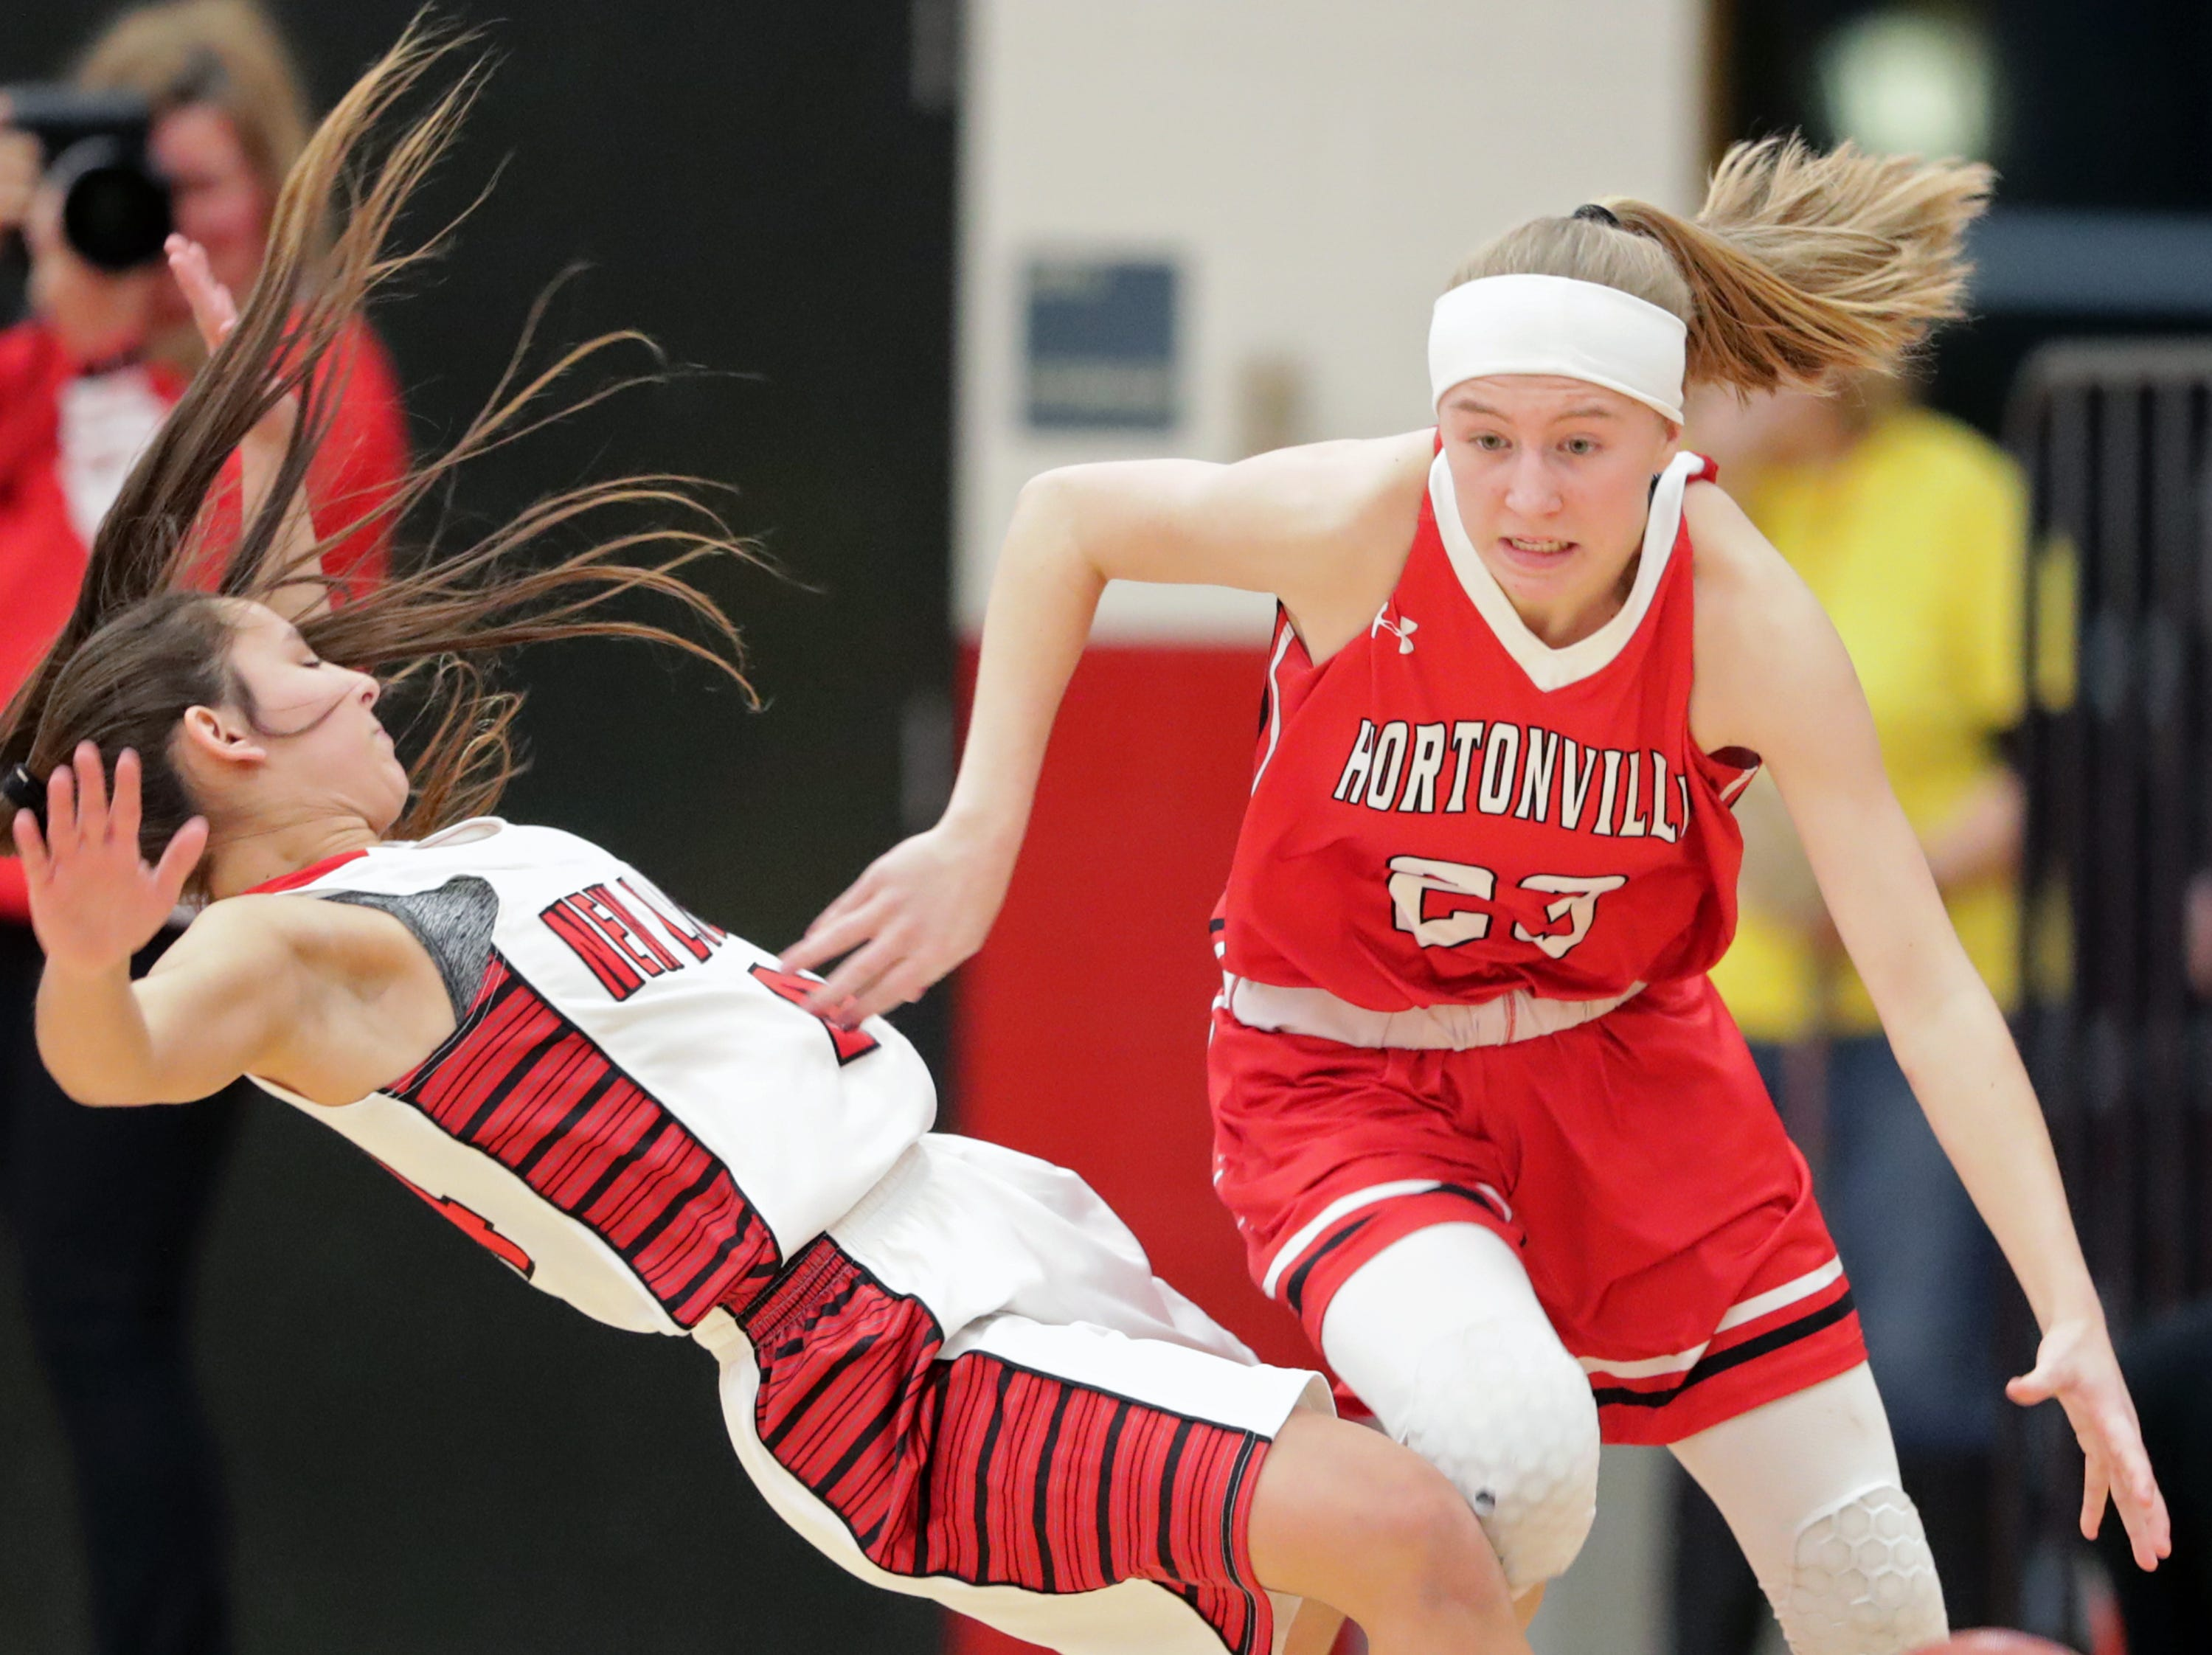 Hortonville High School's #23 Kamy Peppler against New London High School's #24 Samantha Pfefferle during their WIAA Division 2 girls basketball sectional semifinal gameThursday, February 28, 2019, at Kimberly High School in Kimberly, Wis. Hortonville defeated New London 67 to 42.